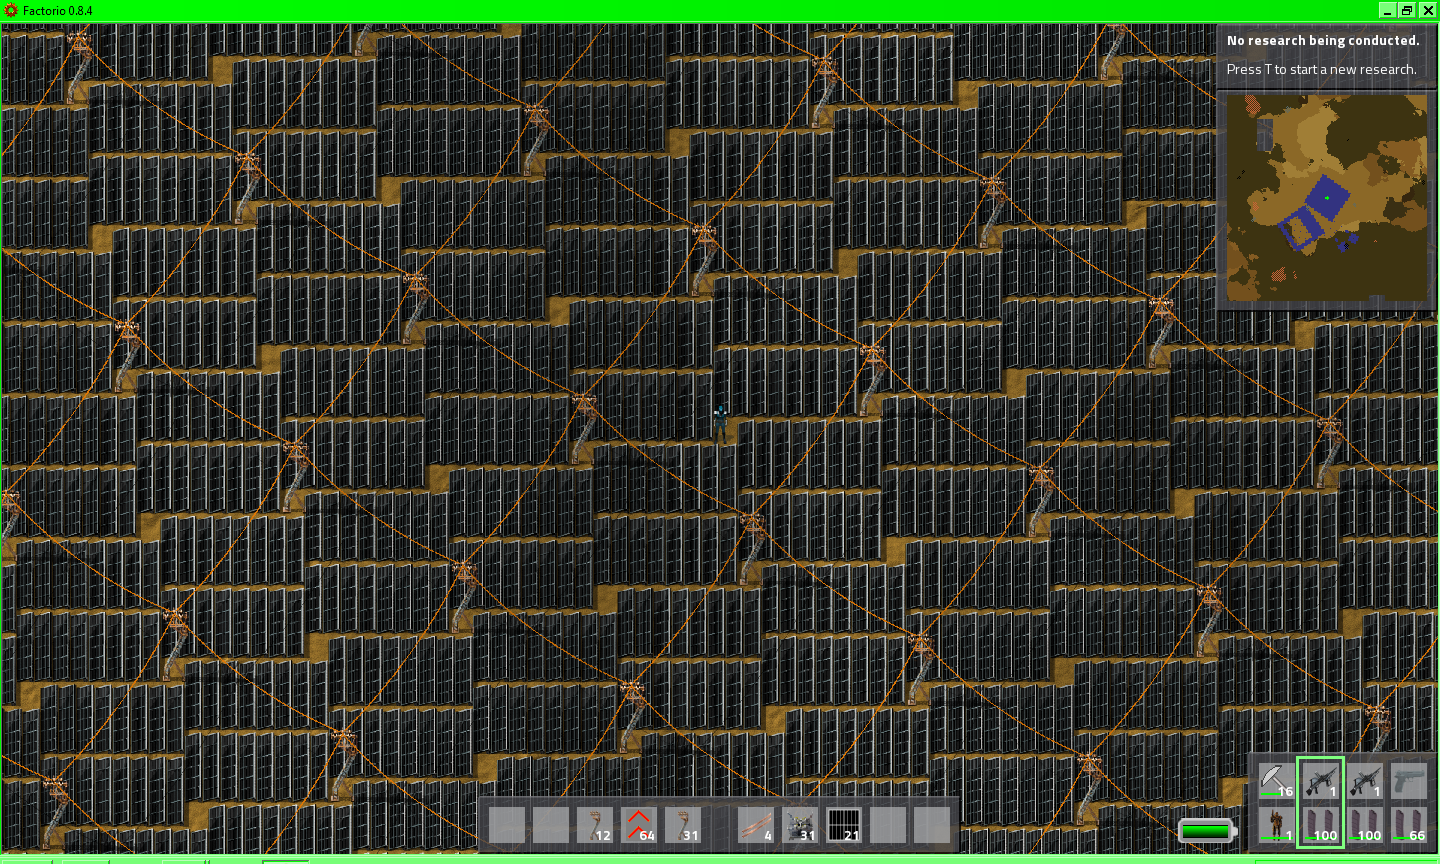 solargrid.png